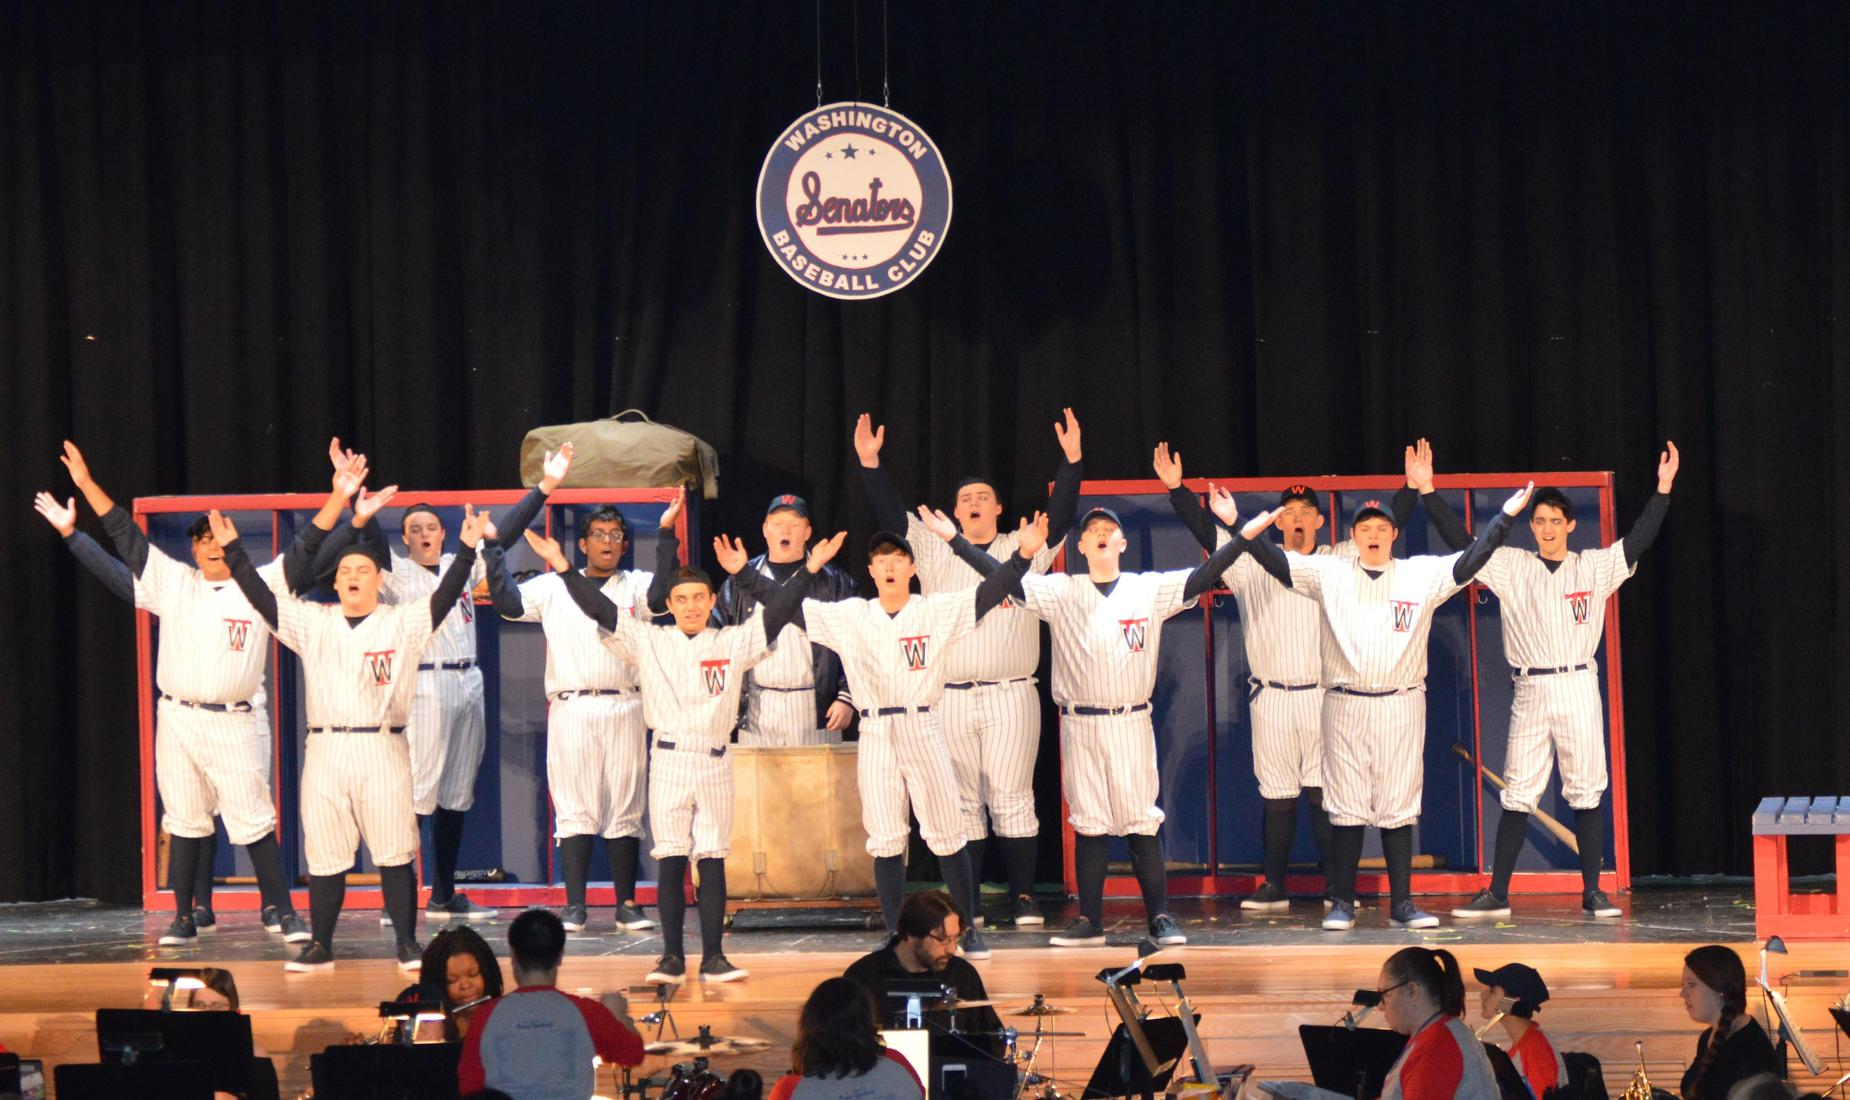 11 students wearing white with navy striped Washington Senators uniforms. They are singing with their arms up in the air.